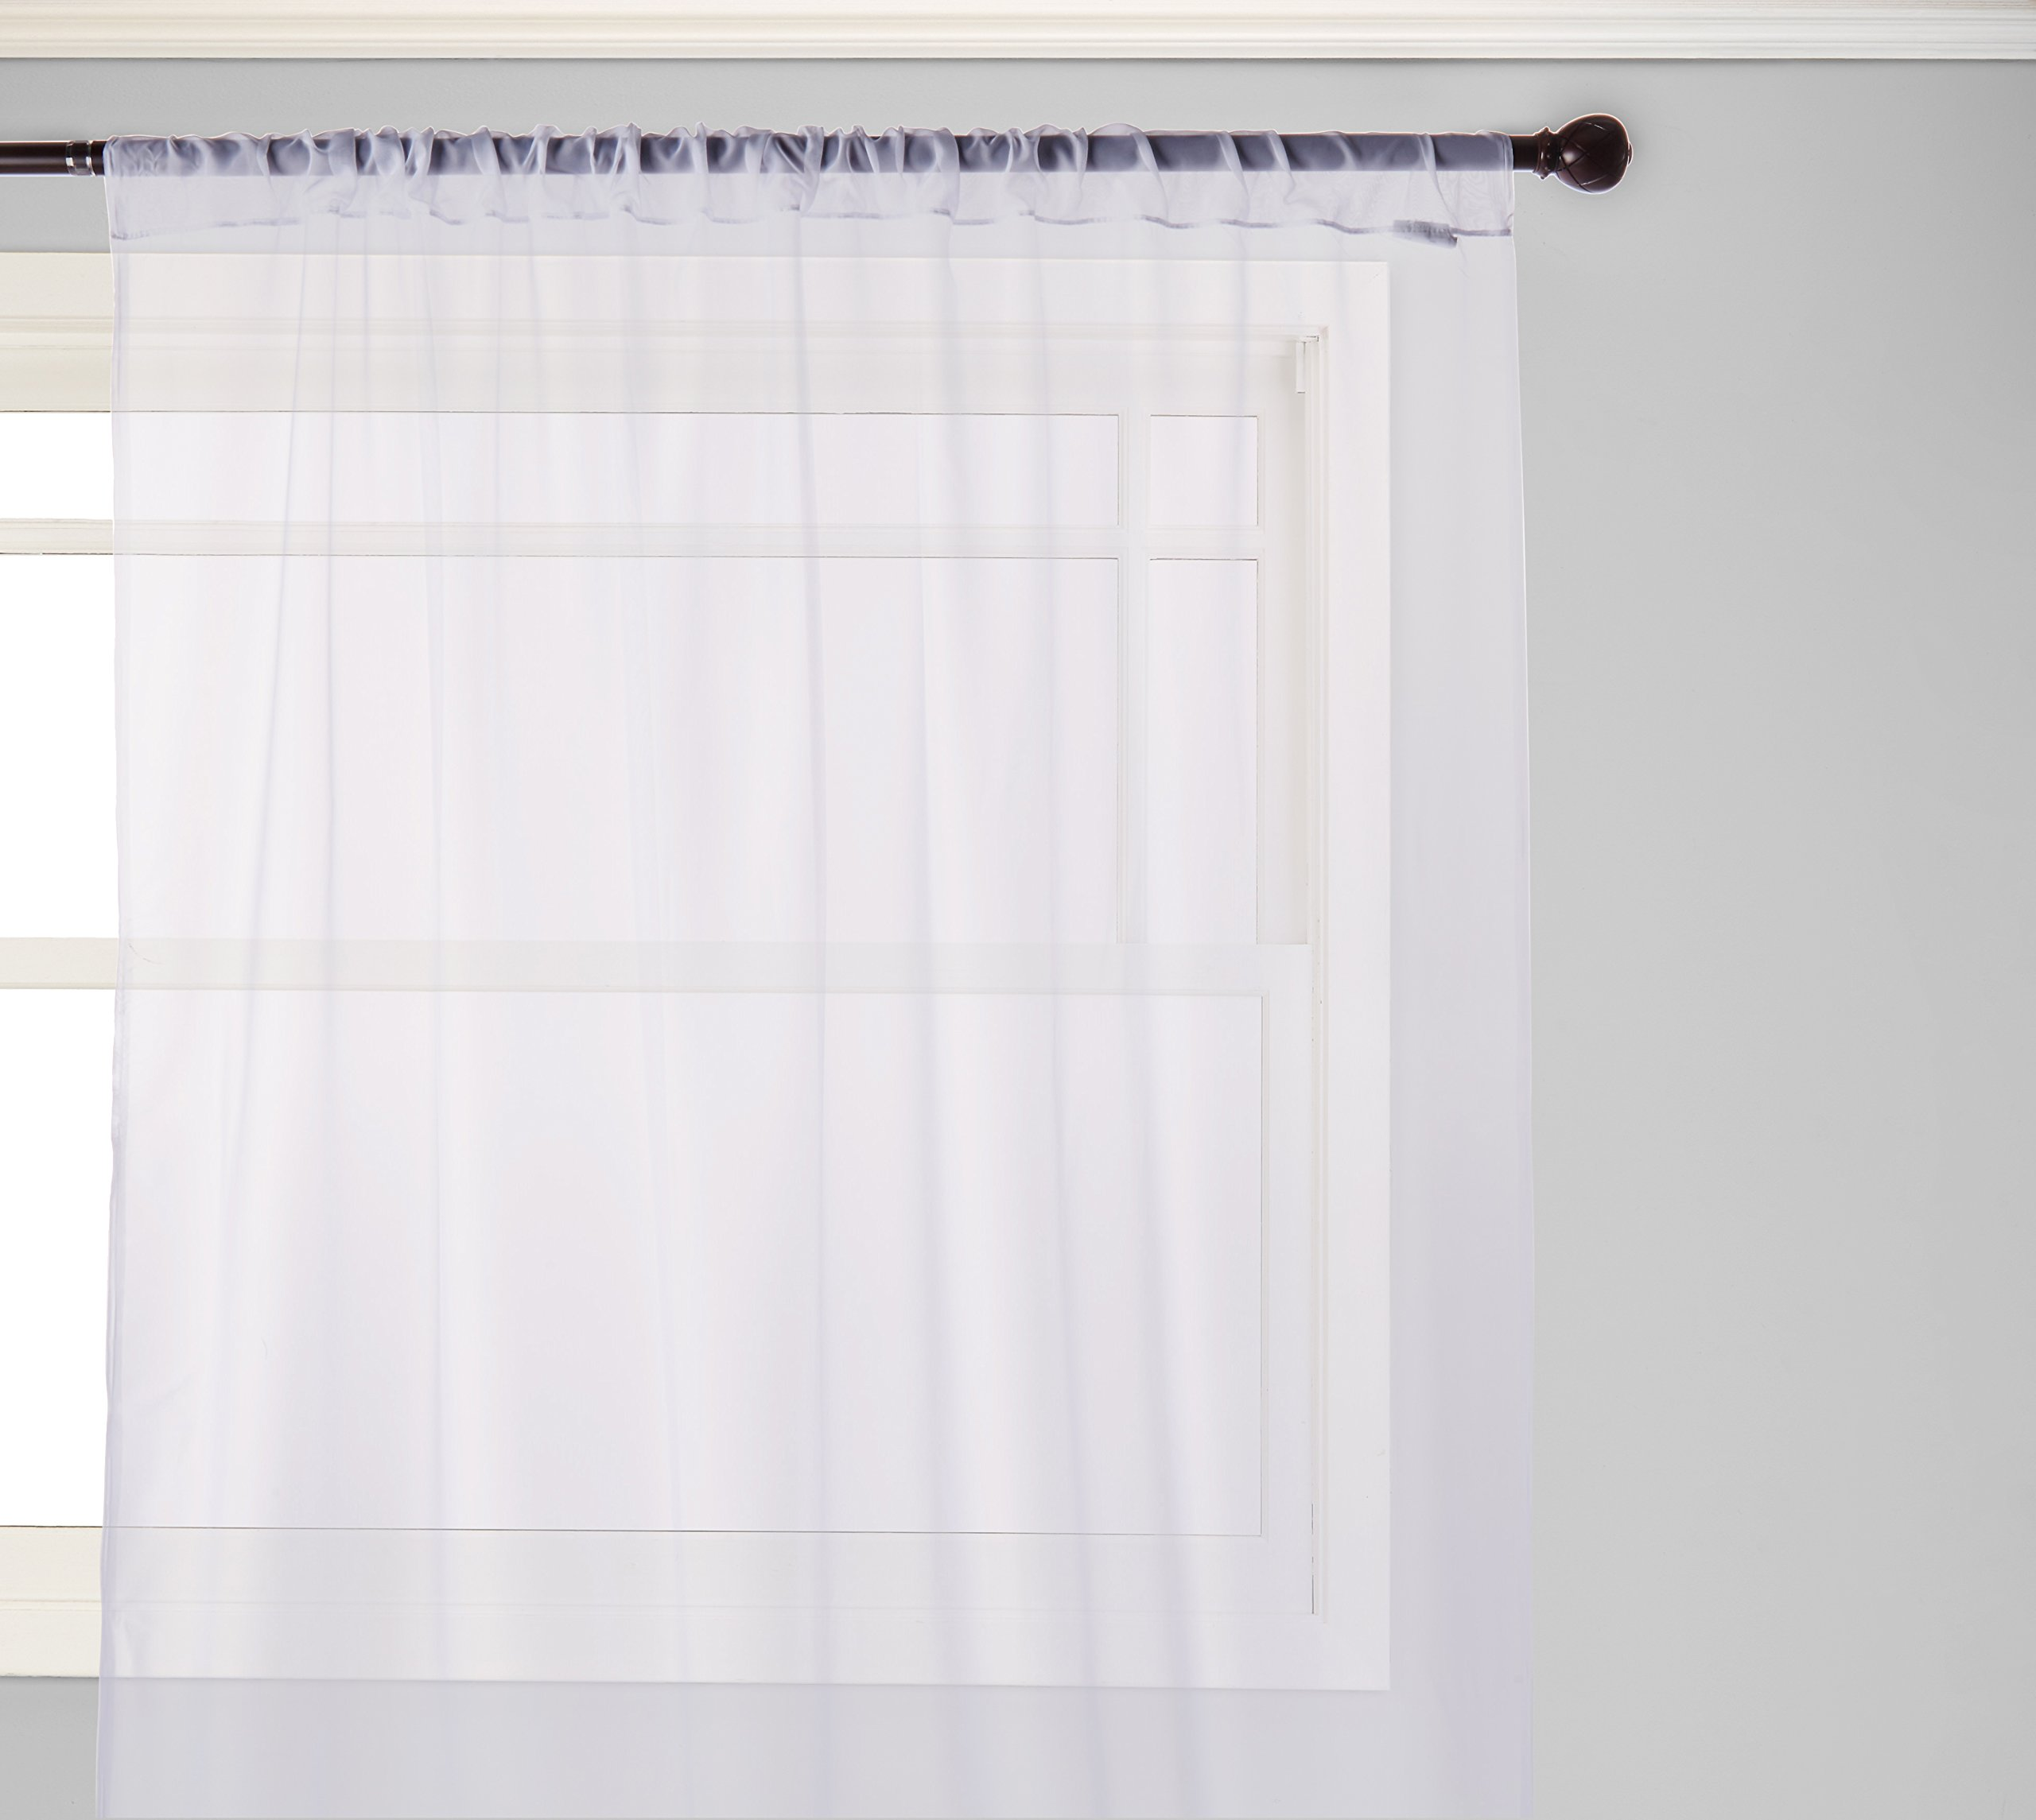 """Curtainworks Soho Voile Sheer Curtain Panel, 59 by 120"""", Winter White - Sheer voile panel with 8-inch rolled hem Antique-grey taupe, Honey-gold taupe, Oyster-light cream ivory, Silver-silver gray, Winter White-white 59 Inch wide; 3-inch rod pocket - living-room-soft-furnishings, living-room, draperies-curtains-shades - 71m5LzzalvL -"""